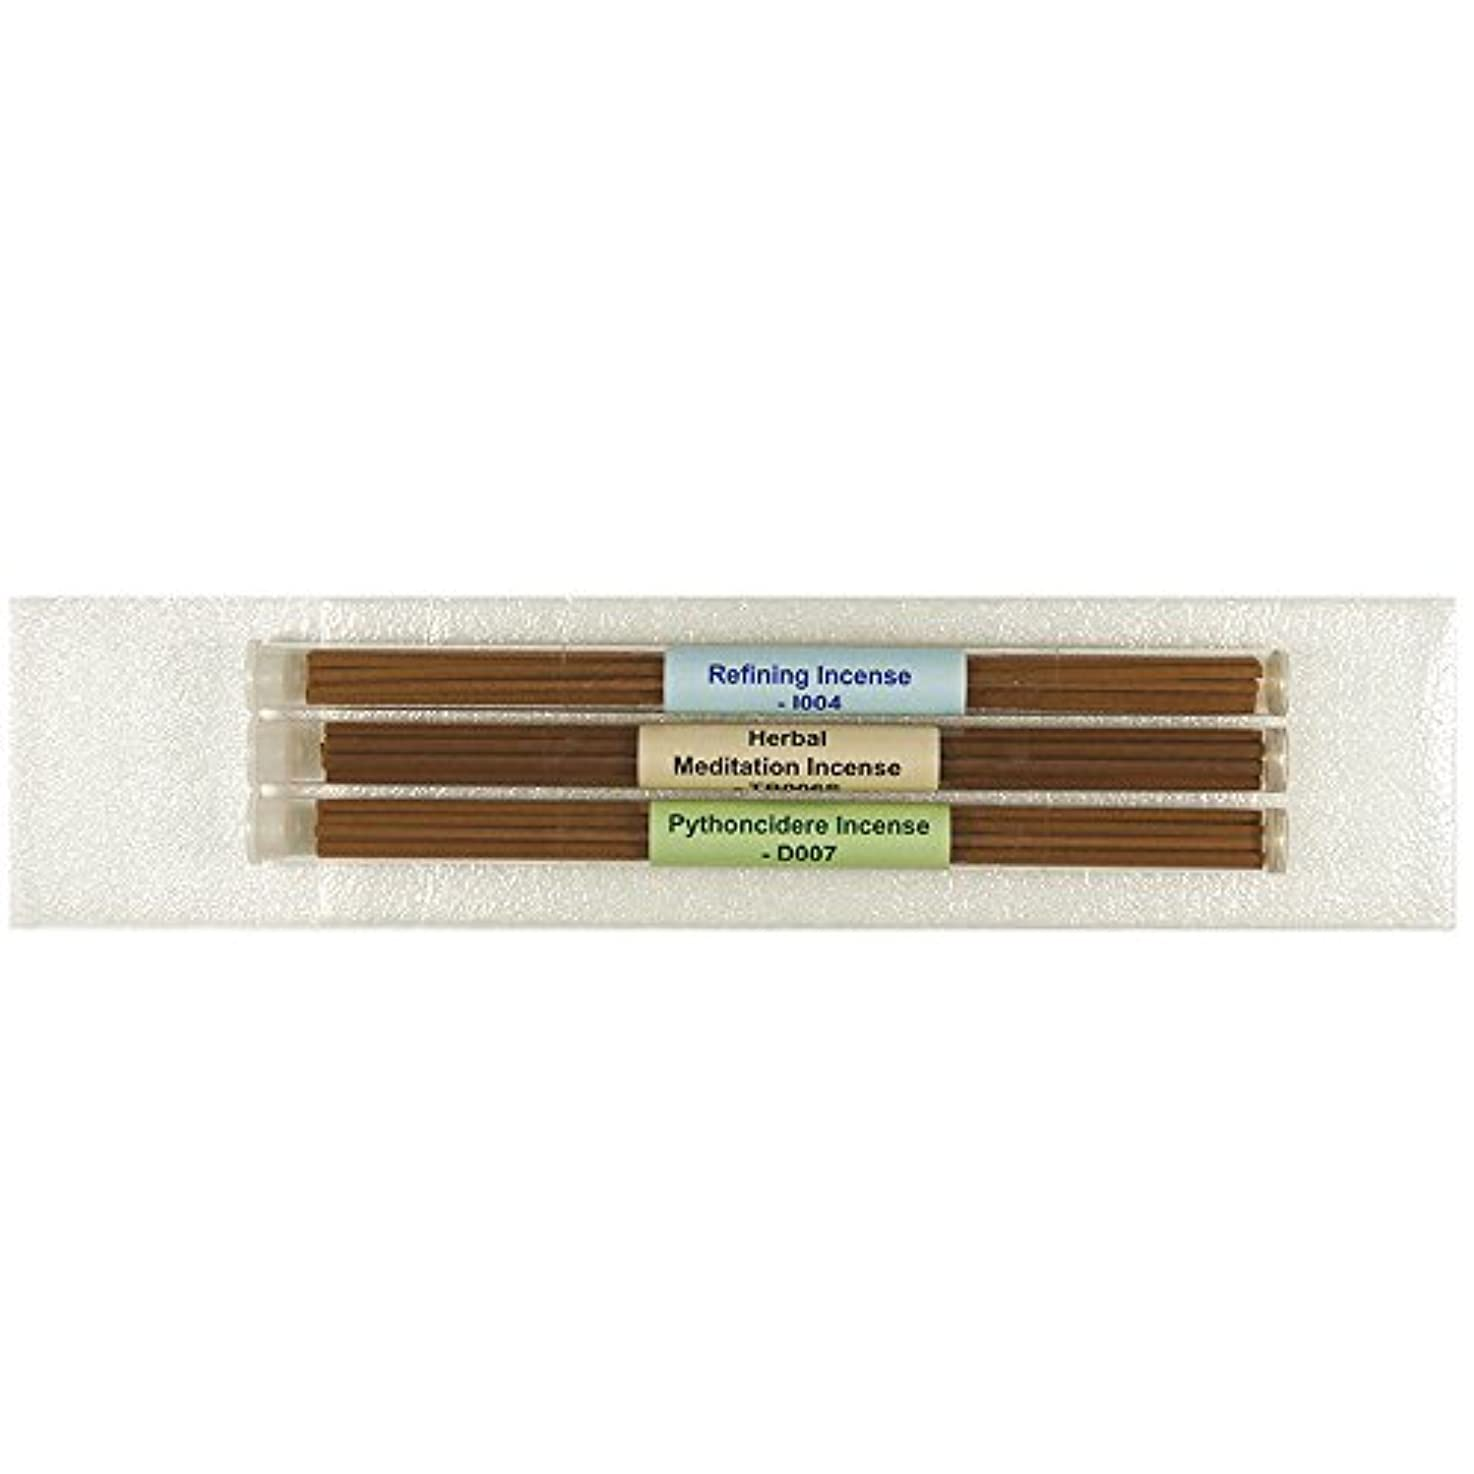 3チューブTibetan Incenseパック# 3 – [ Refining Incense +ハーブMeditation Incense ø4 mm + Pythoncidere Incense ] – 8